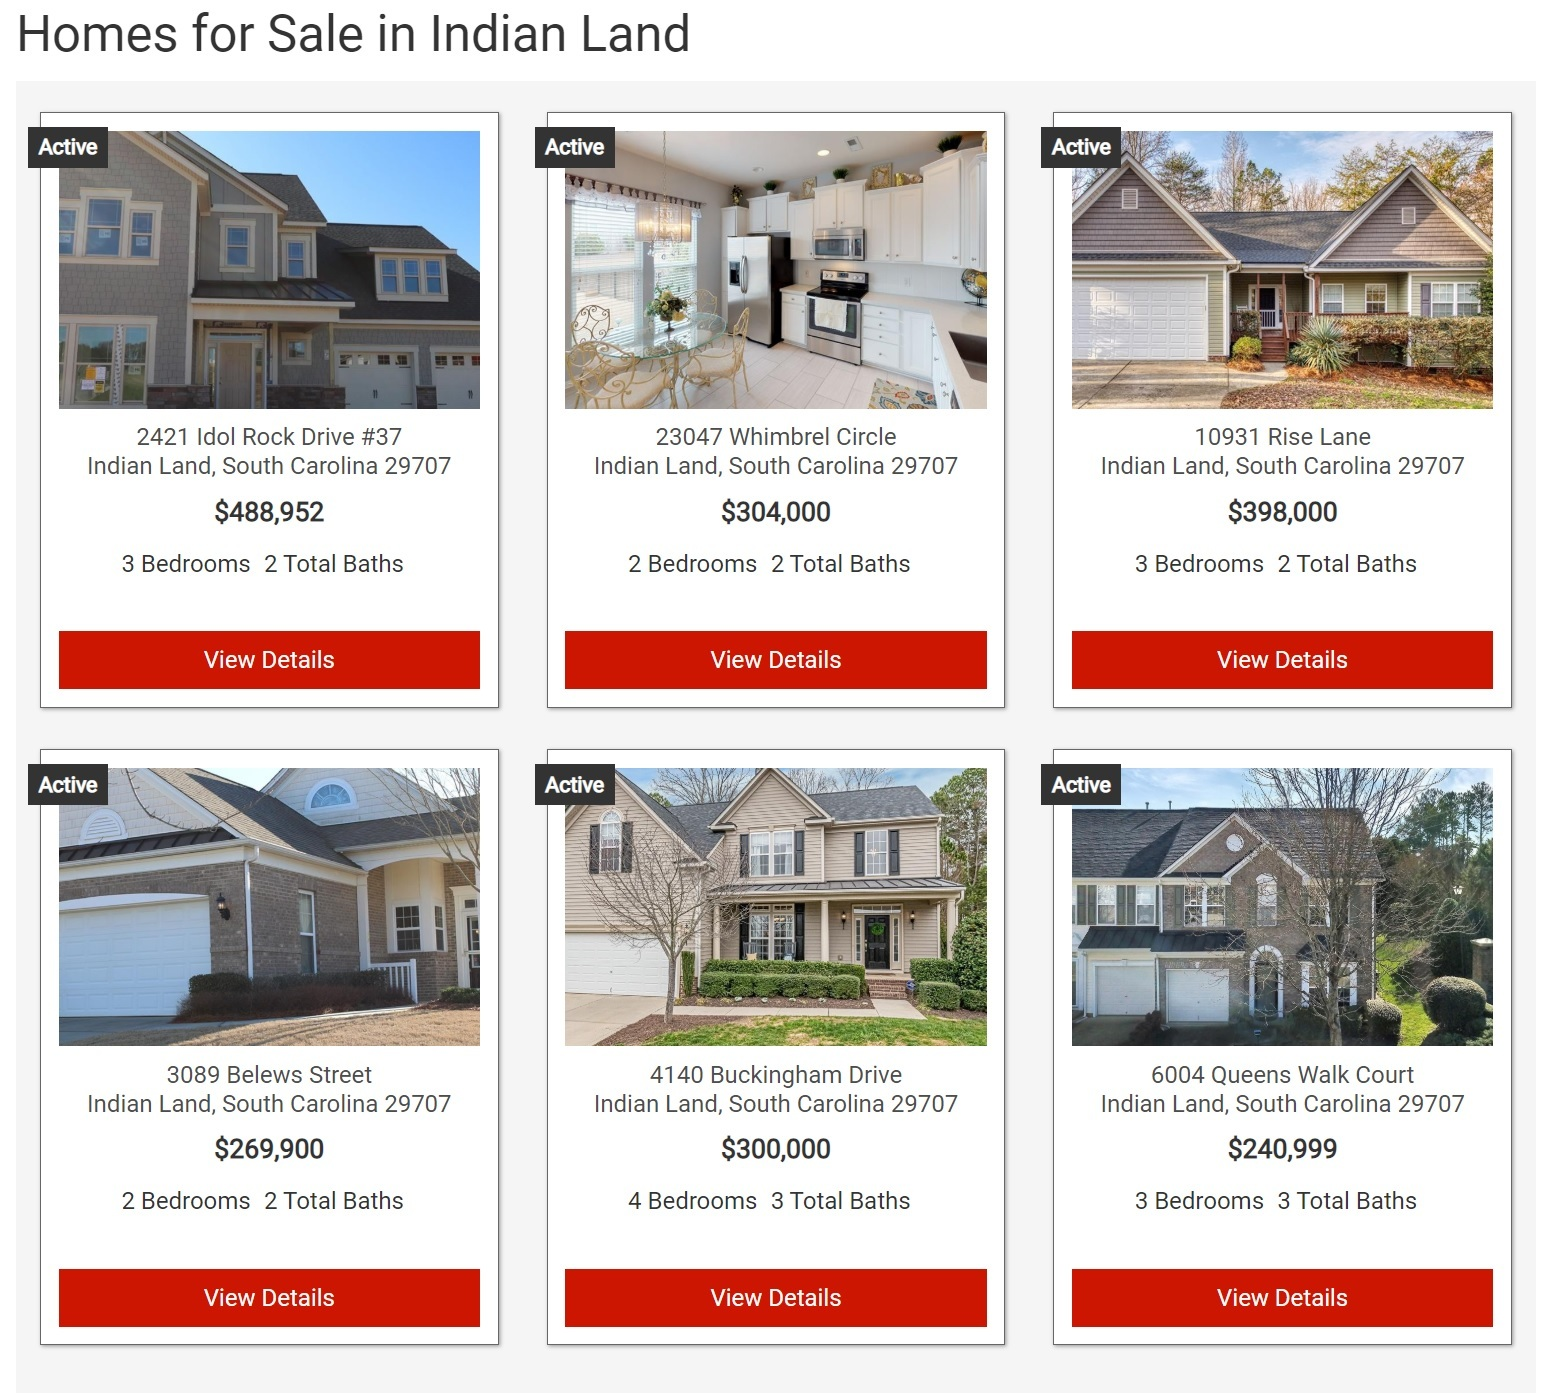 Search for all Indian Land Homes For Sale